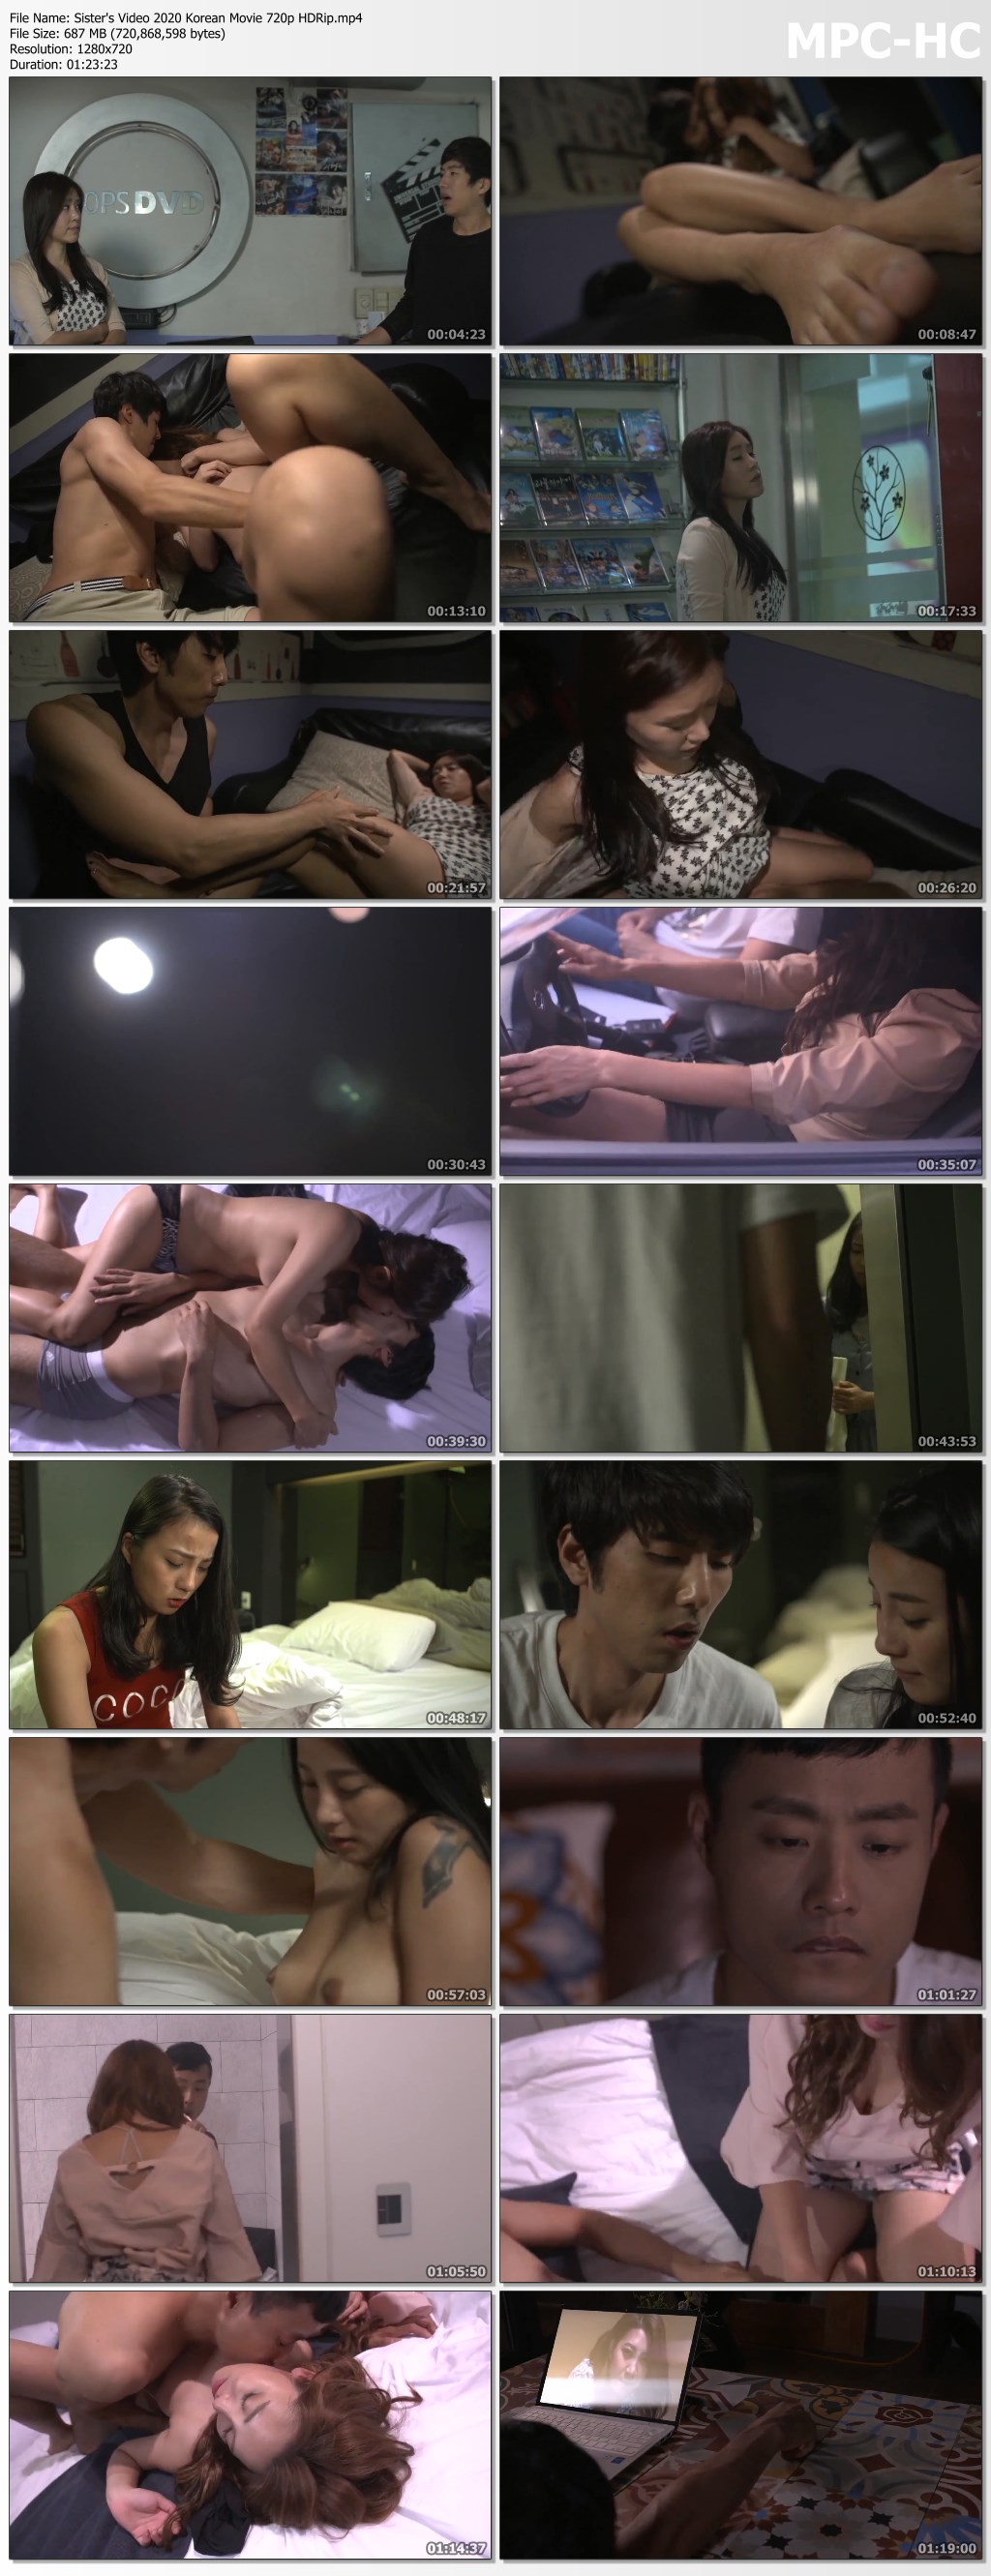 Sister's Video 2020 Korean Movie 720p HDRip.mp4 thumbs